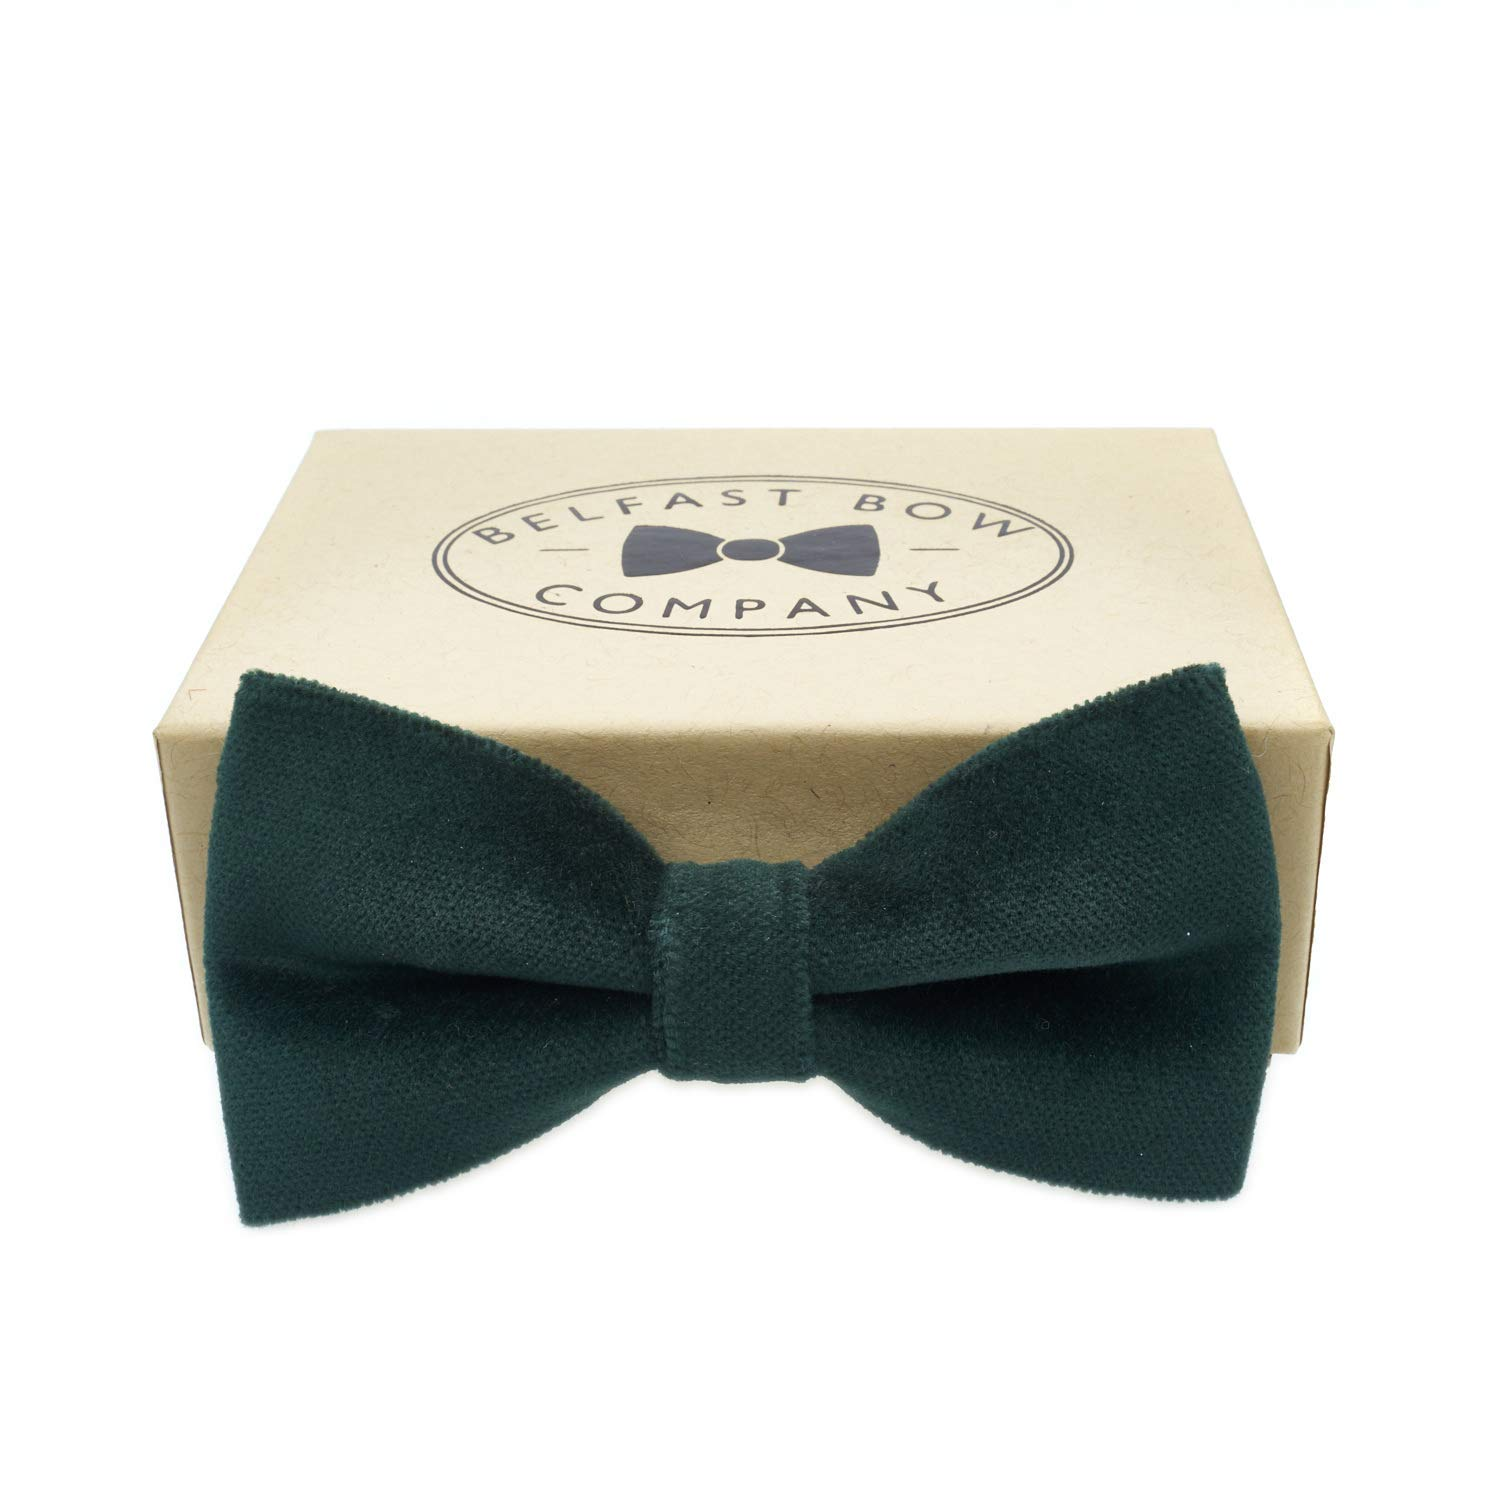 Handmade Velvet Bow Tie in Bottle Green - Adult & Junior sizes available